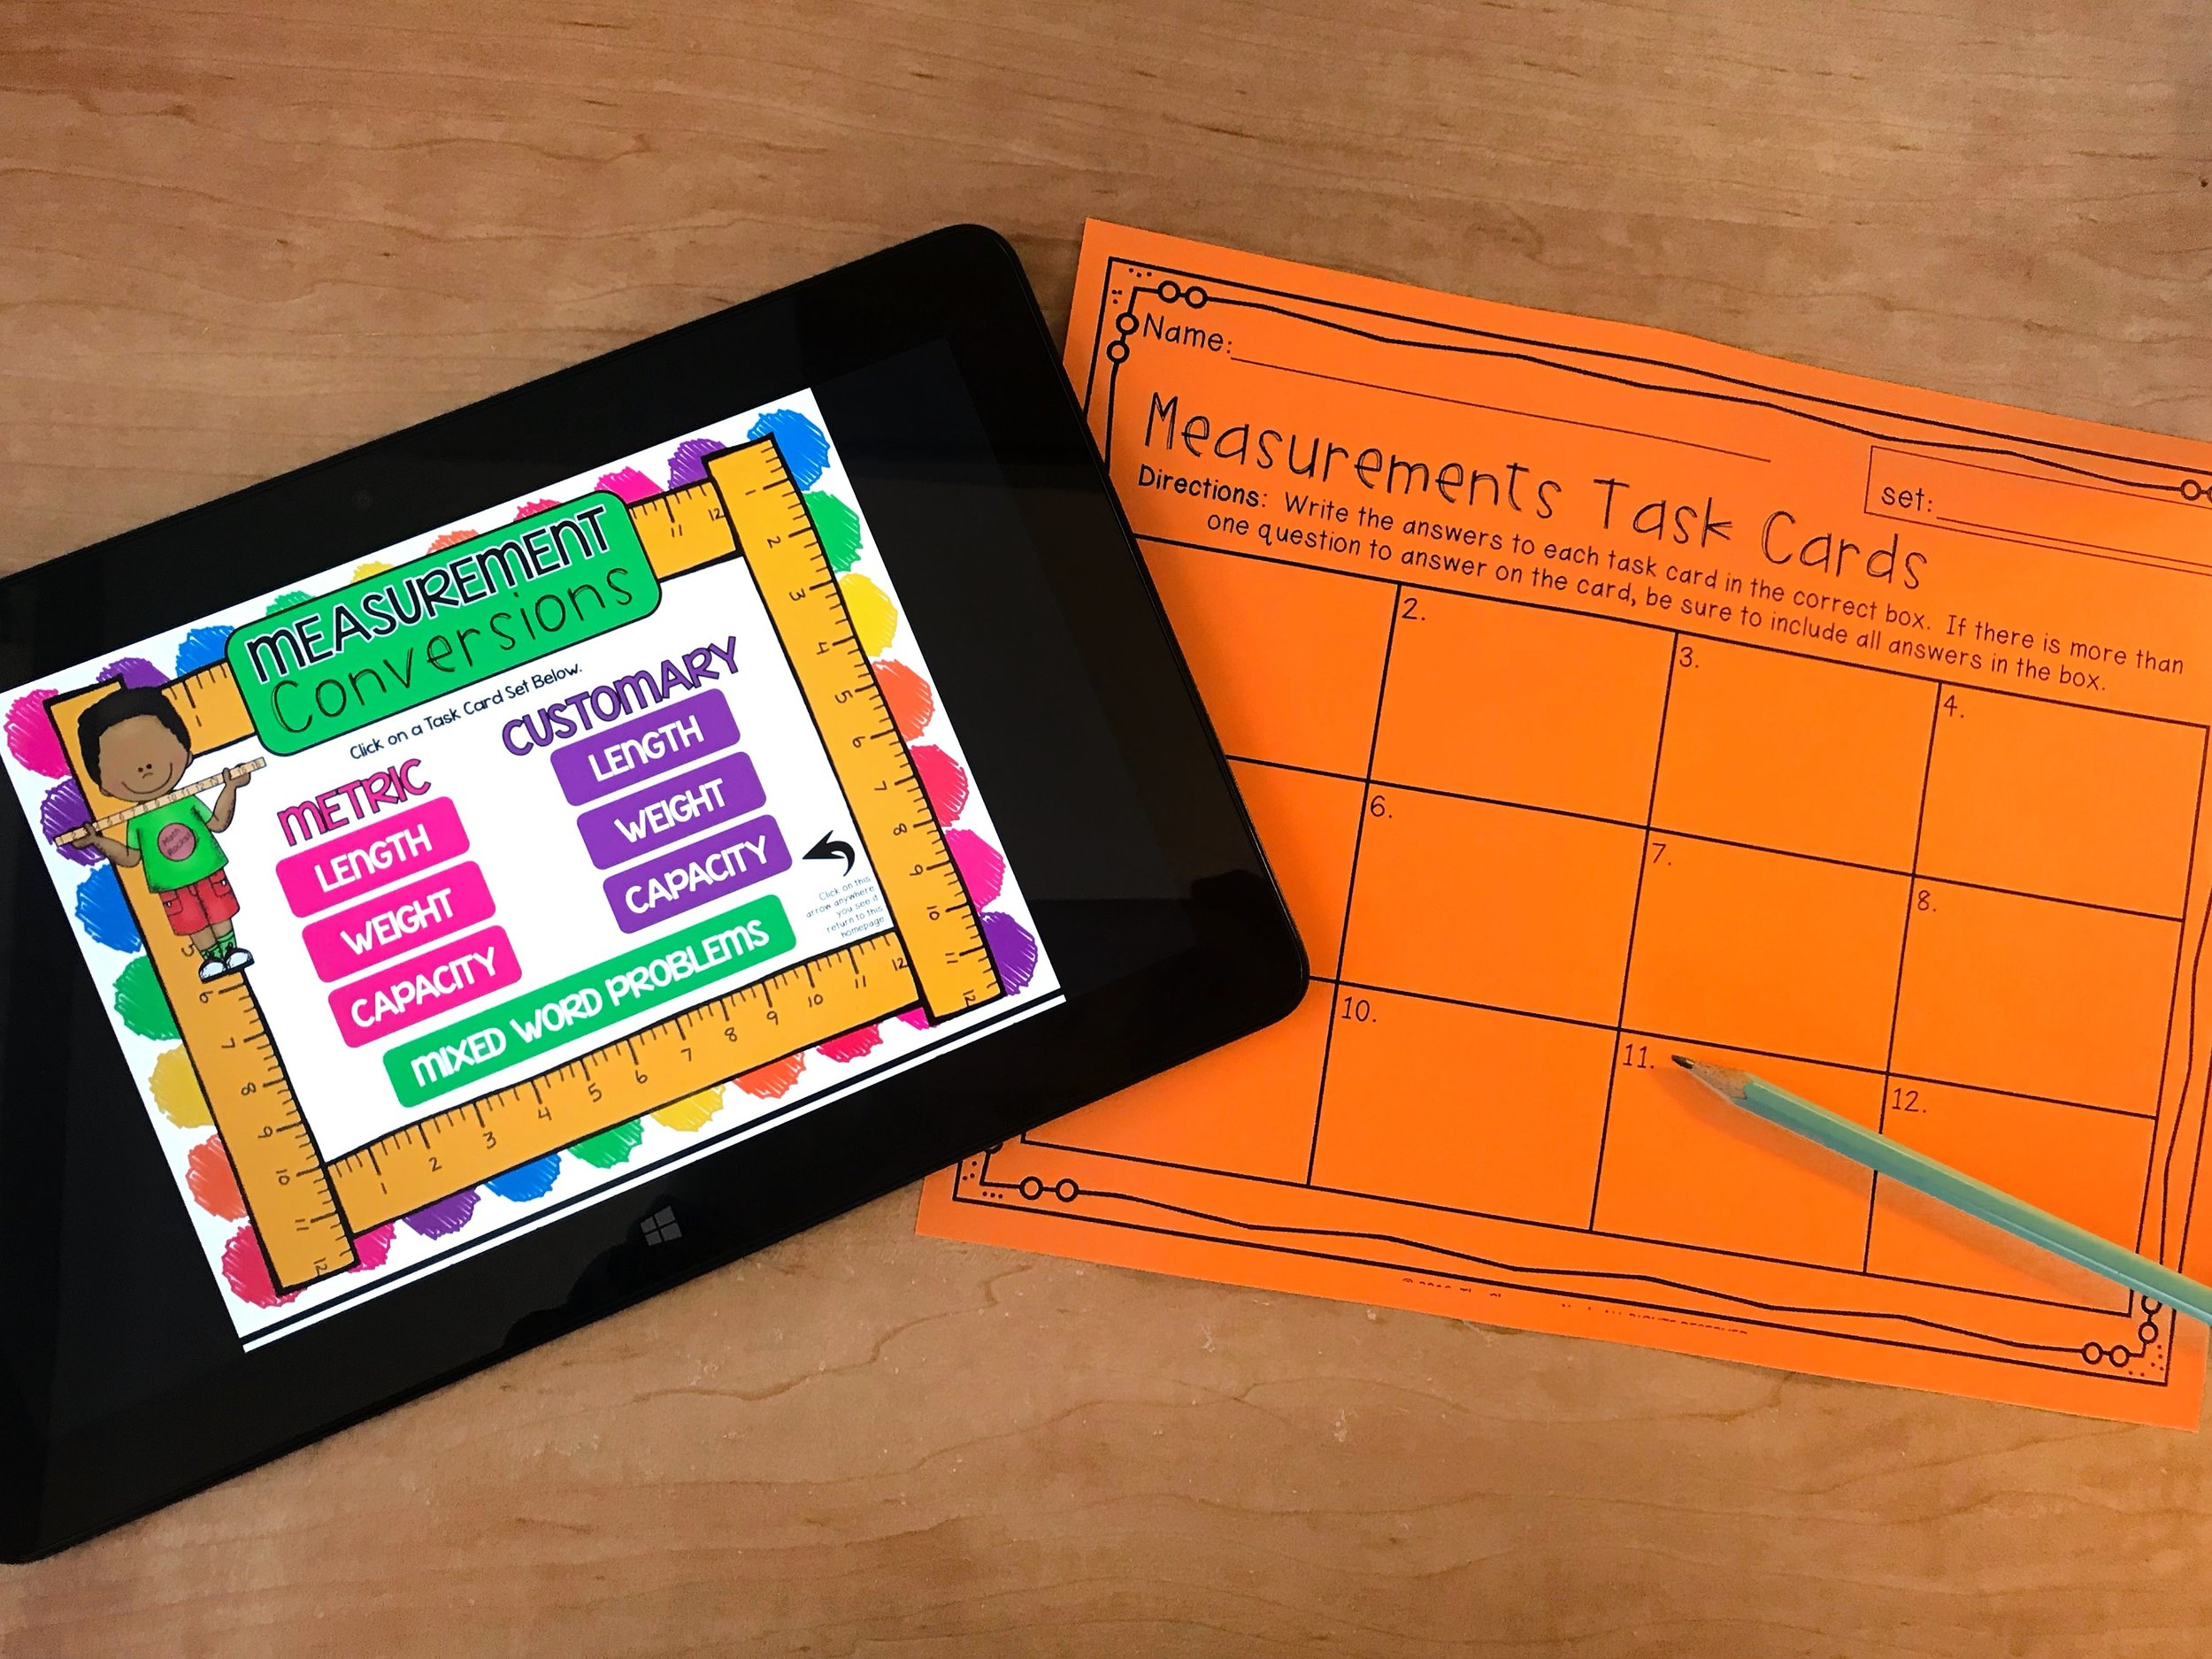 This activity allows students to access the measurement task cards in a digital Link & Think format.